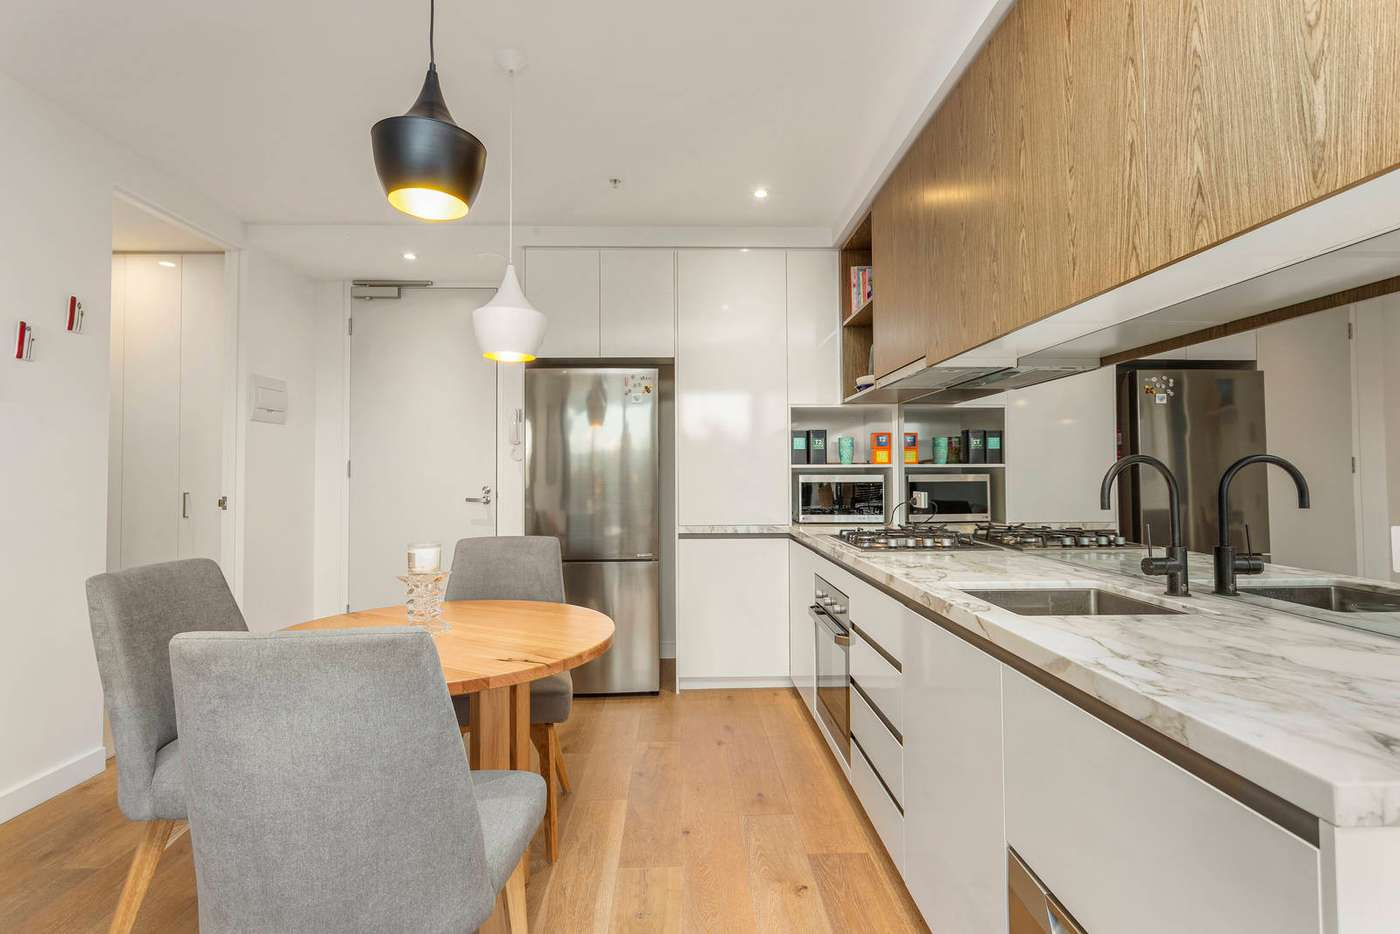 Sixth view of Homely apartment listing, 204(18)/42 Kororoit Creek Road, Williamstown VIC 3016